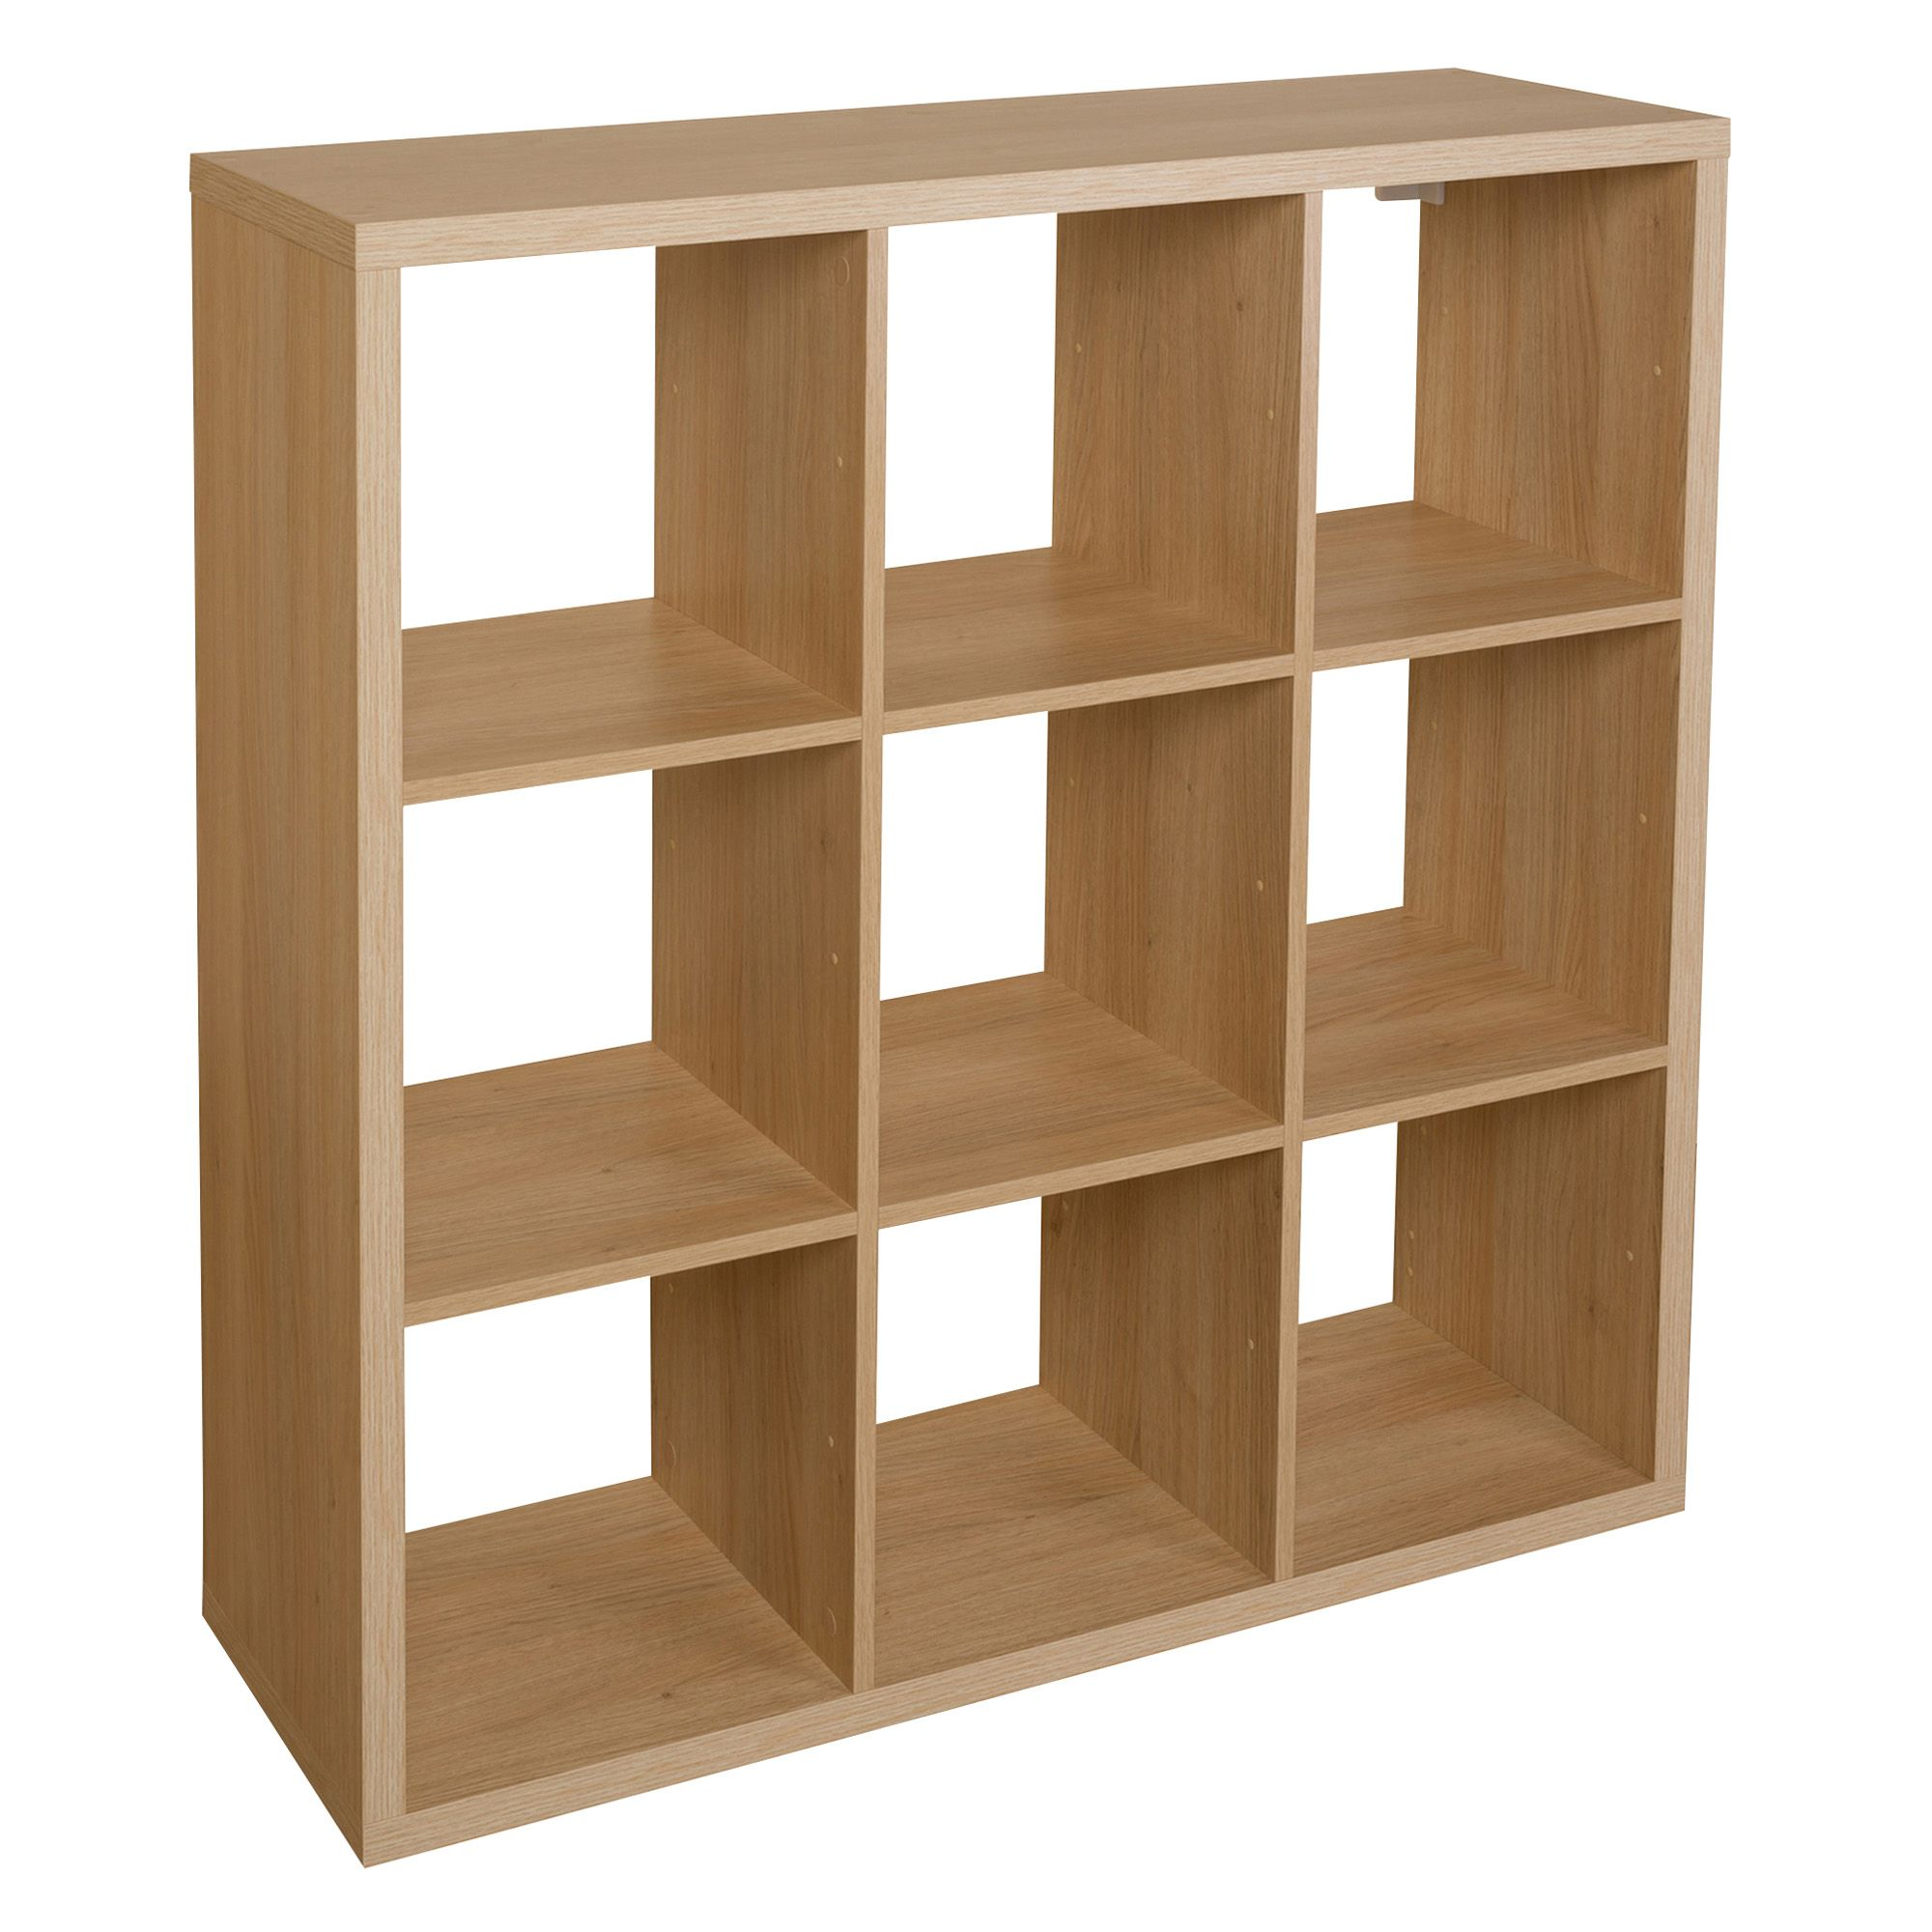 Bathroom Cabinets Uk Bq Form Mixxit Oak Effect 9 Cube Shelving Unit H1080mm W1080mm